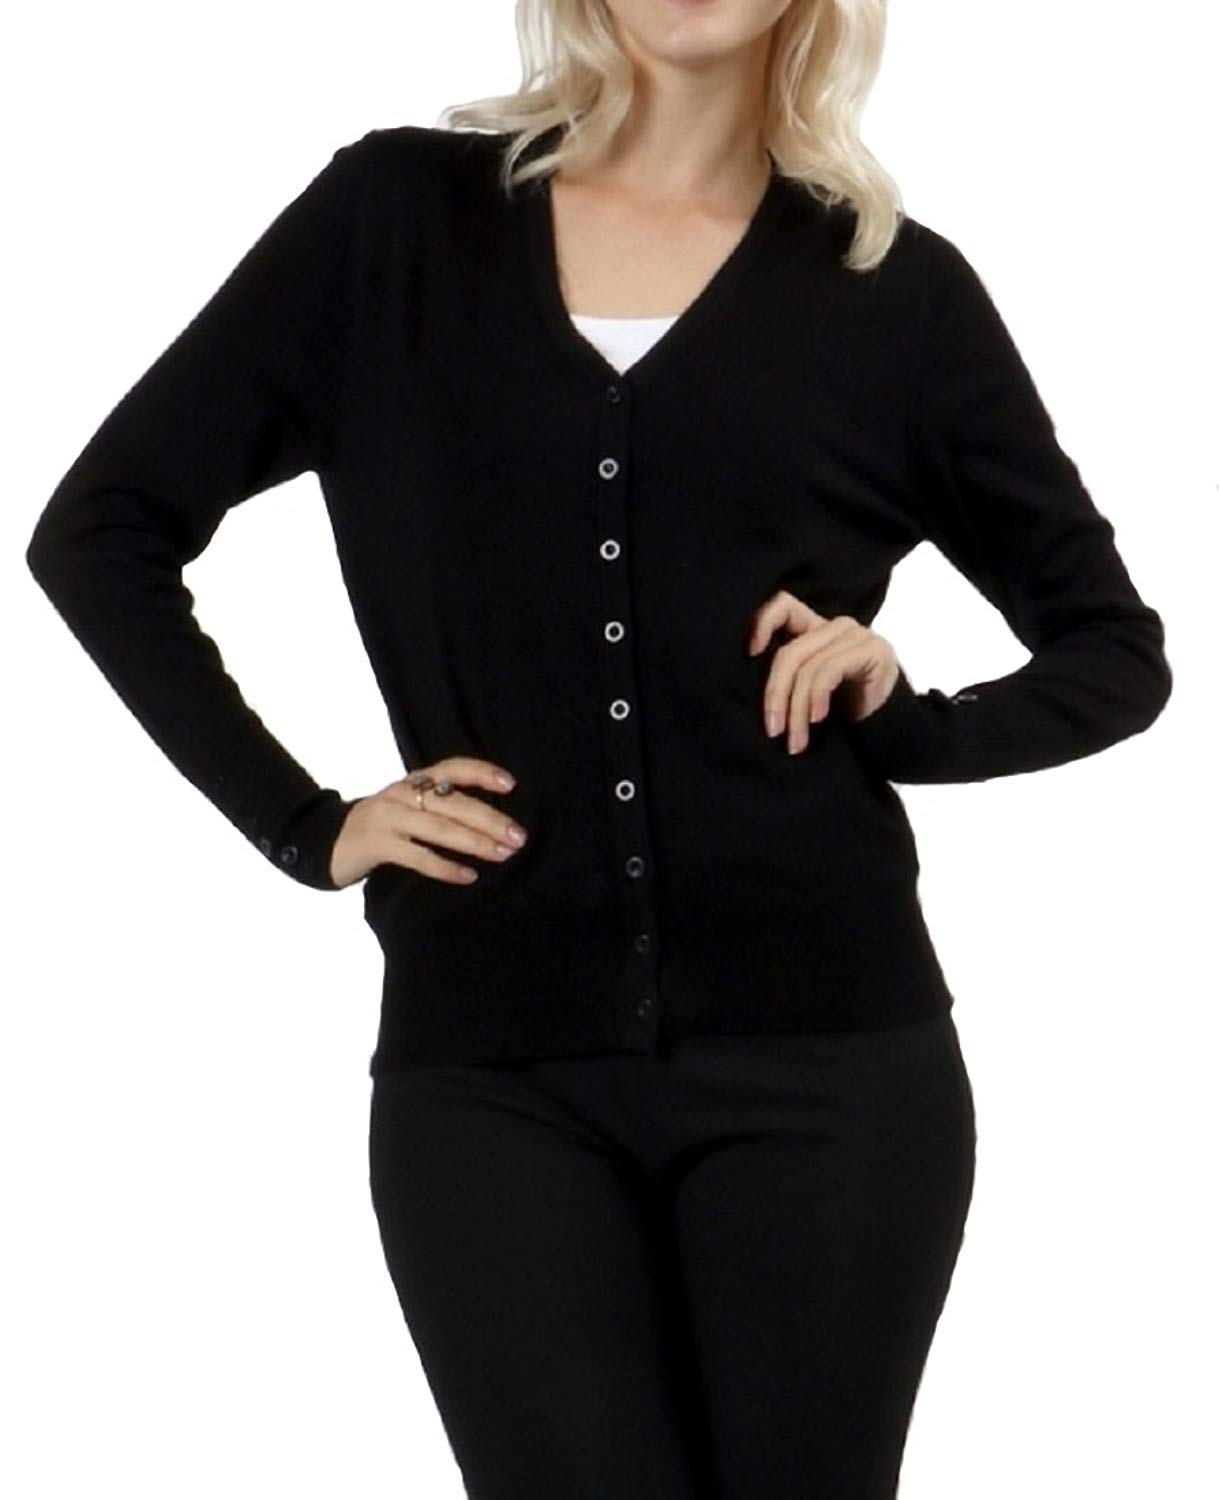 45574058e7 Get Quotations · Zenana Long Sleeve Button Down Cardigan with Button Detail on  Sleeves